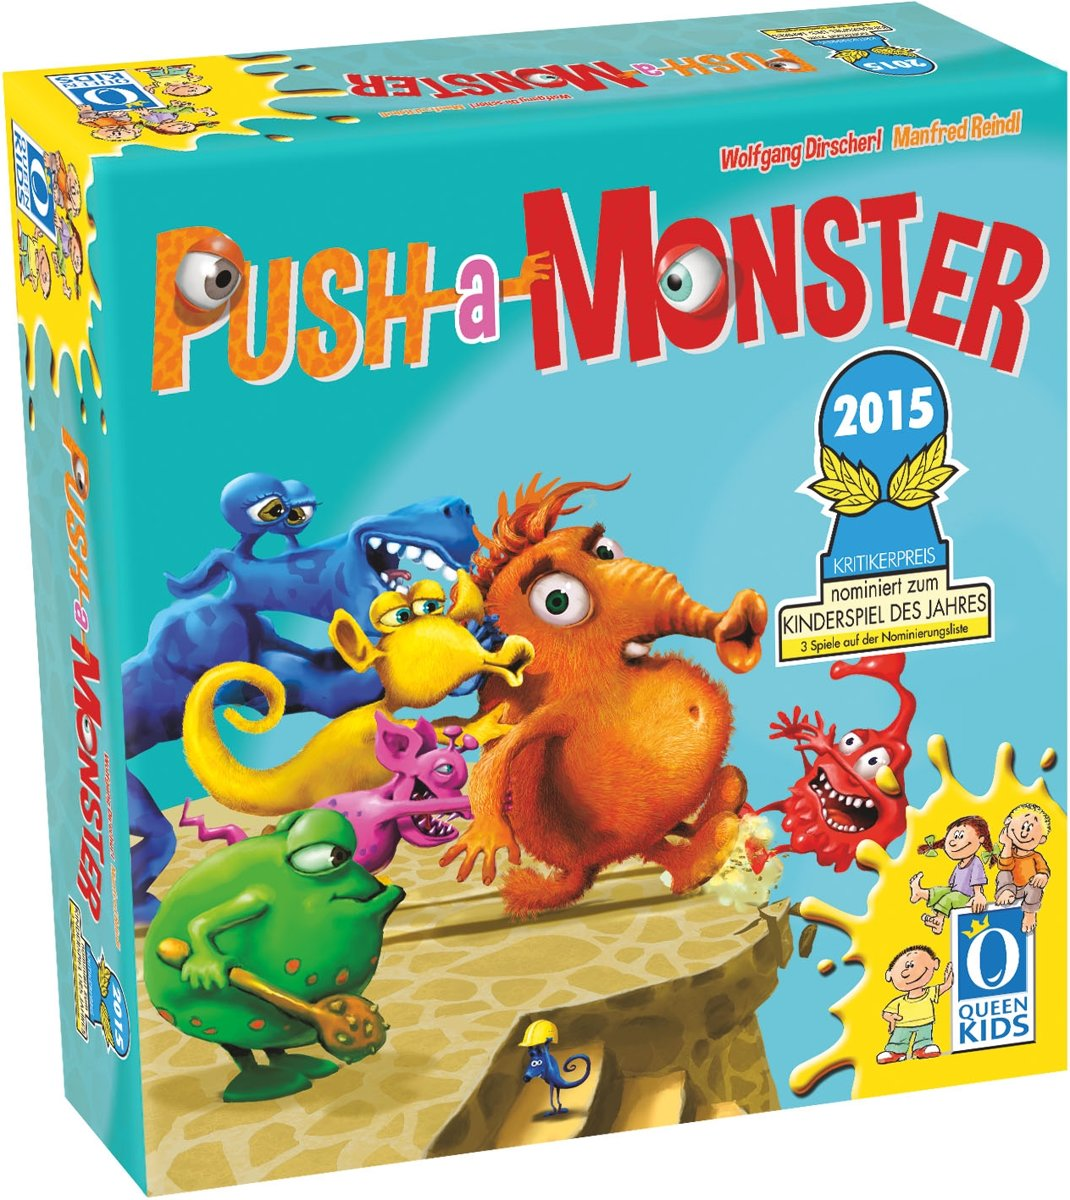 Push a Monster Bordspel jeugd EN / FR / DE